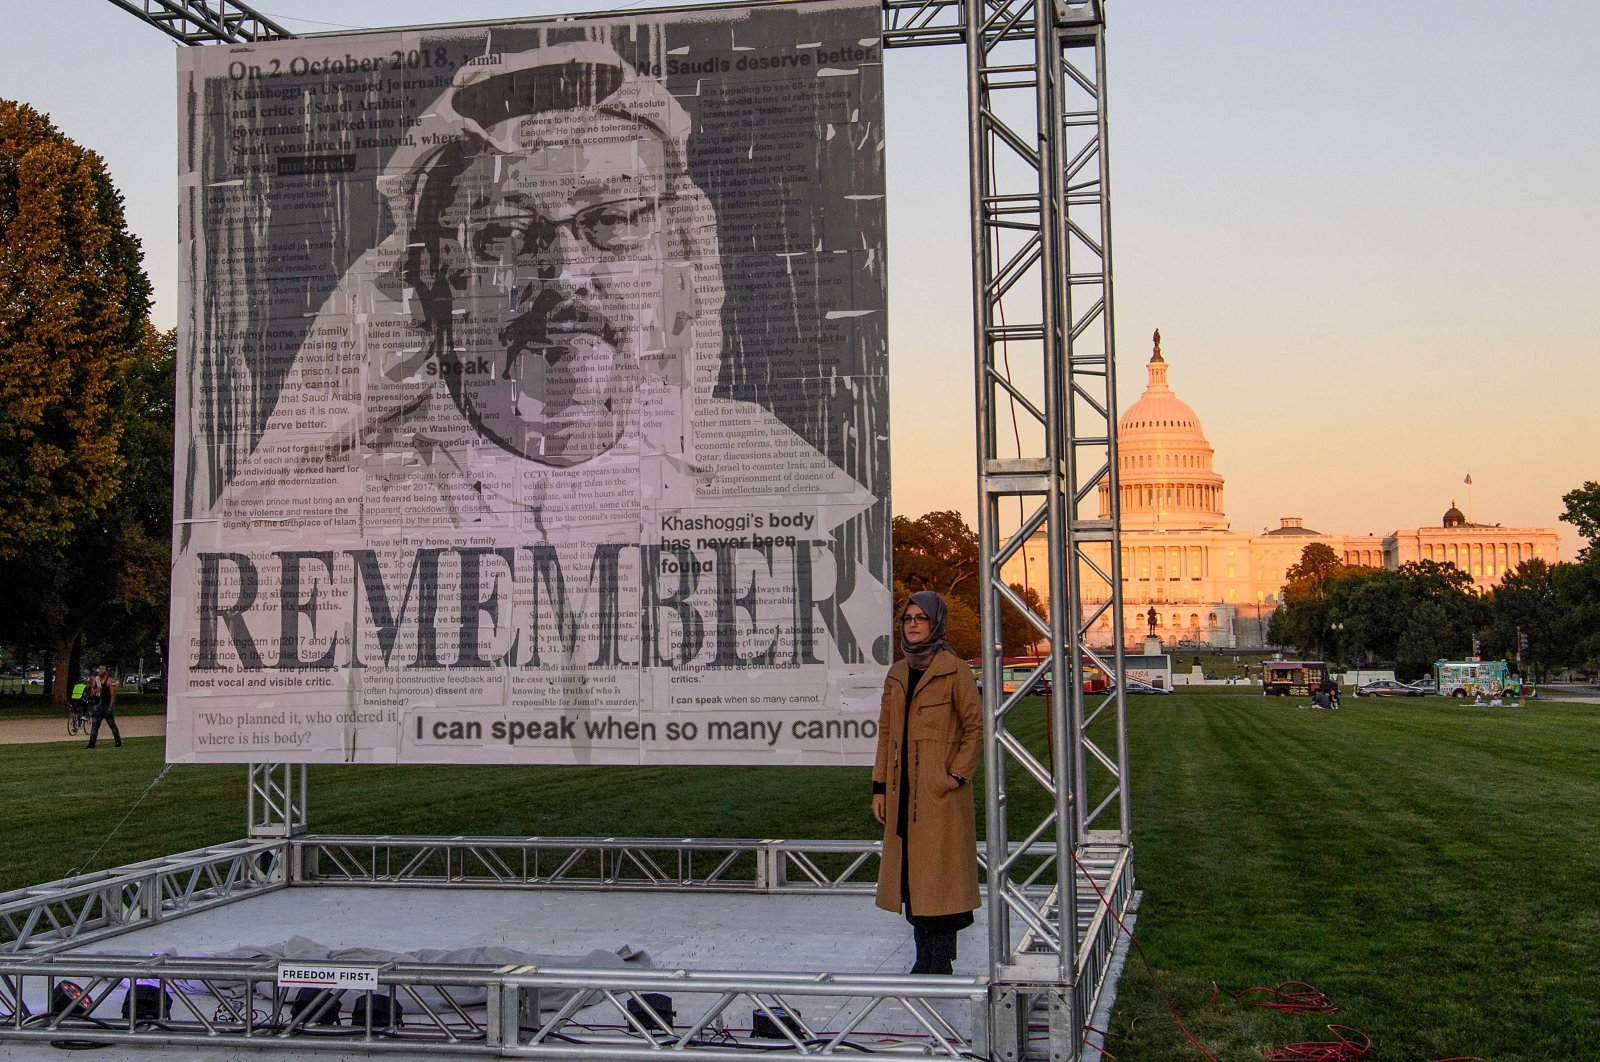 Turkish writer Hatice Cengiz (R), fiancee of Saudi journalist and dissident Jamal Khashoggi, poses next to a portrait of Khashoggi after unveiling it on the National Mall in Washington, D.C., U.S., Oct. 1, 2021, during a memorial ceremony marking the third anniversary of his murder at the Saudi Consulate in Istanbul. (AFP Photo)